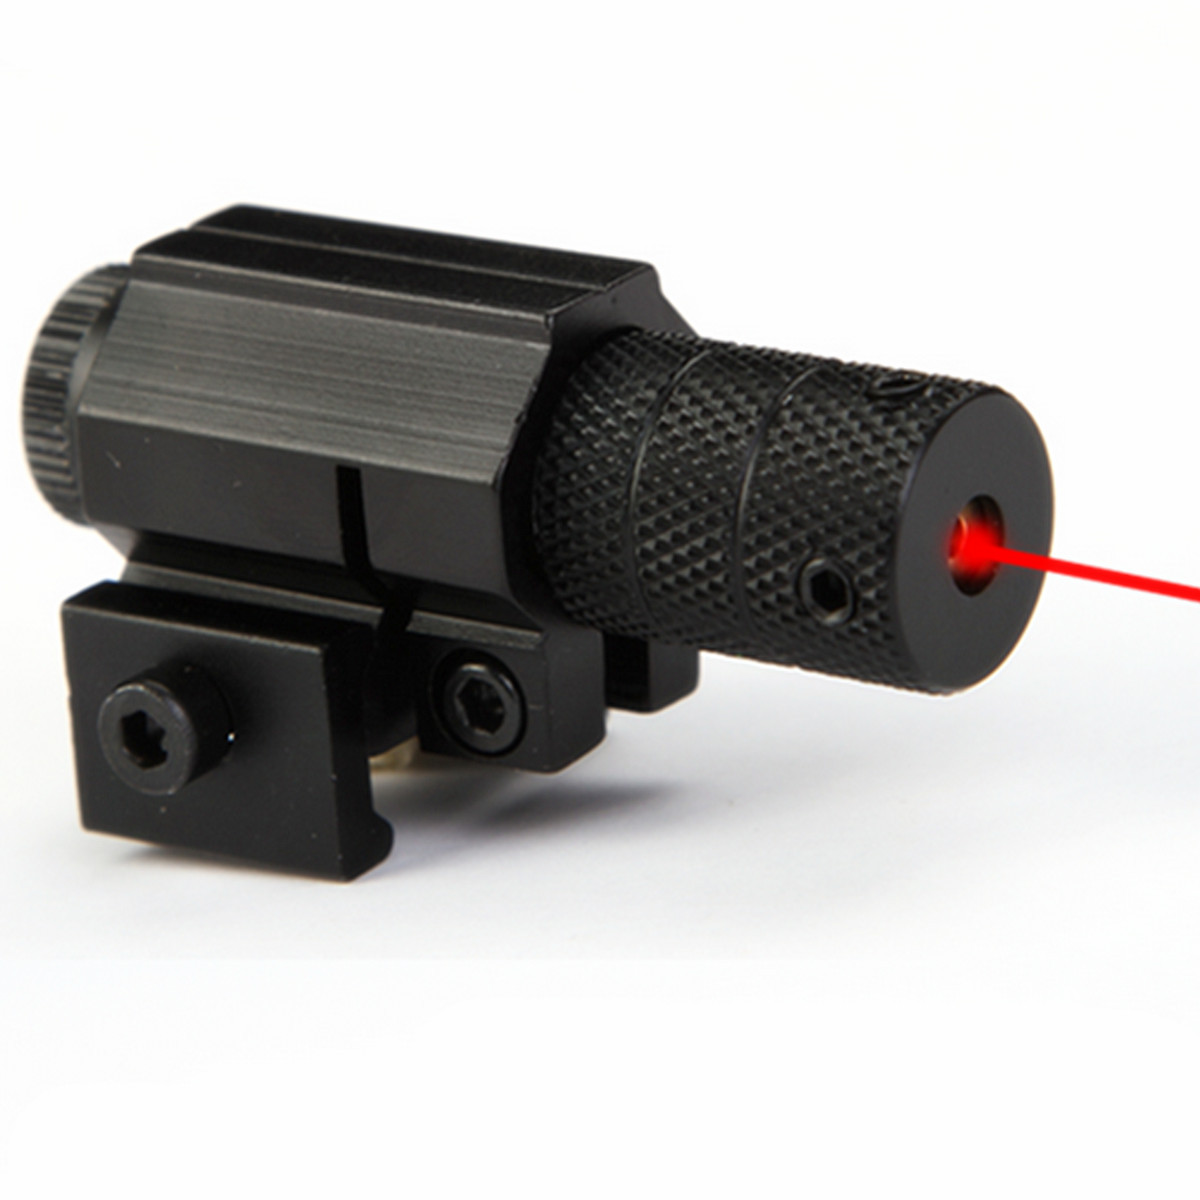 100m 835-655mm Tactical Aiming Red Beam Dot Laser Bore Sight Scope With Mount for Gun Rifle Pistol ac contactor lc1f115d7 lc1 f115d7 42v lc1f115e7 lc1 f115e7 48v lc1f115f7 lc1 f115f7 110v lc1f115g7 lc1 f115g7 120v